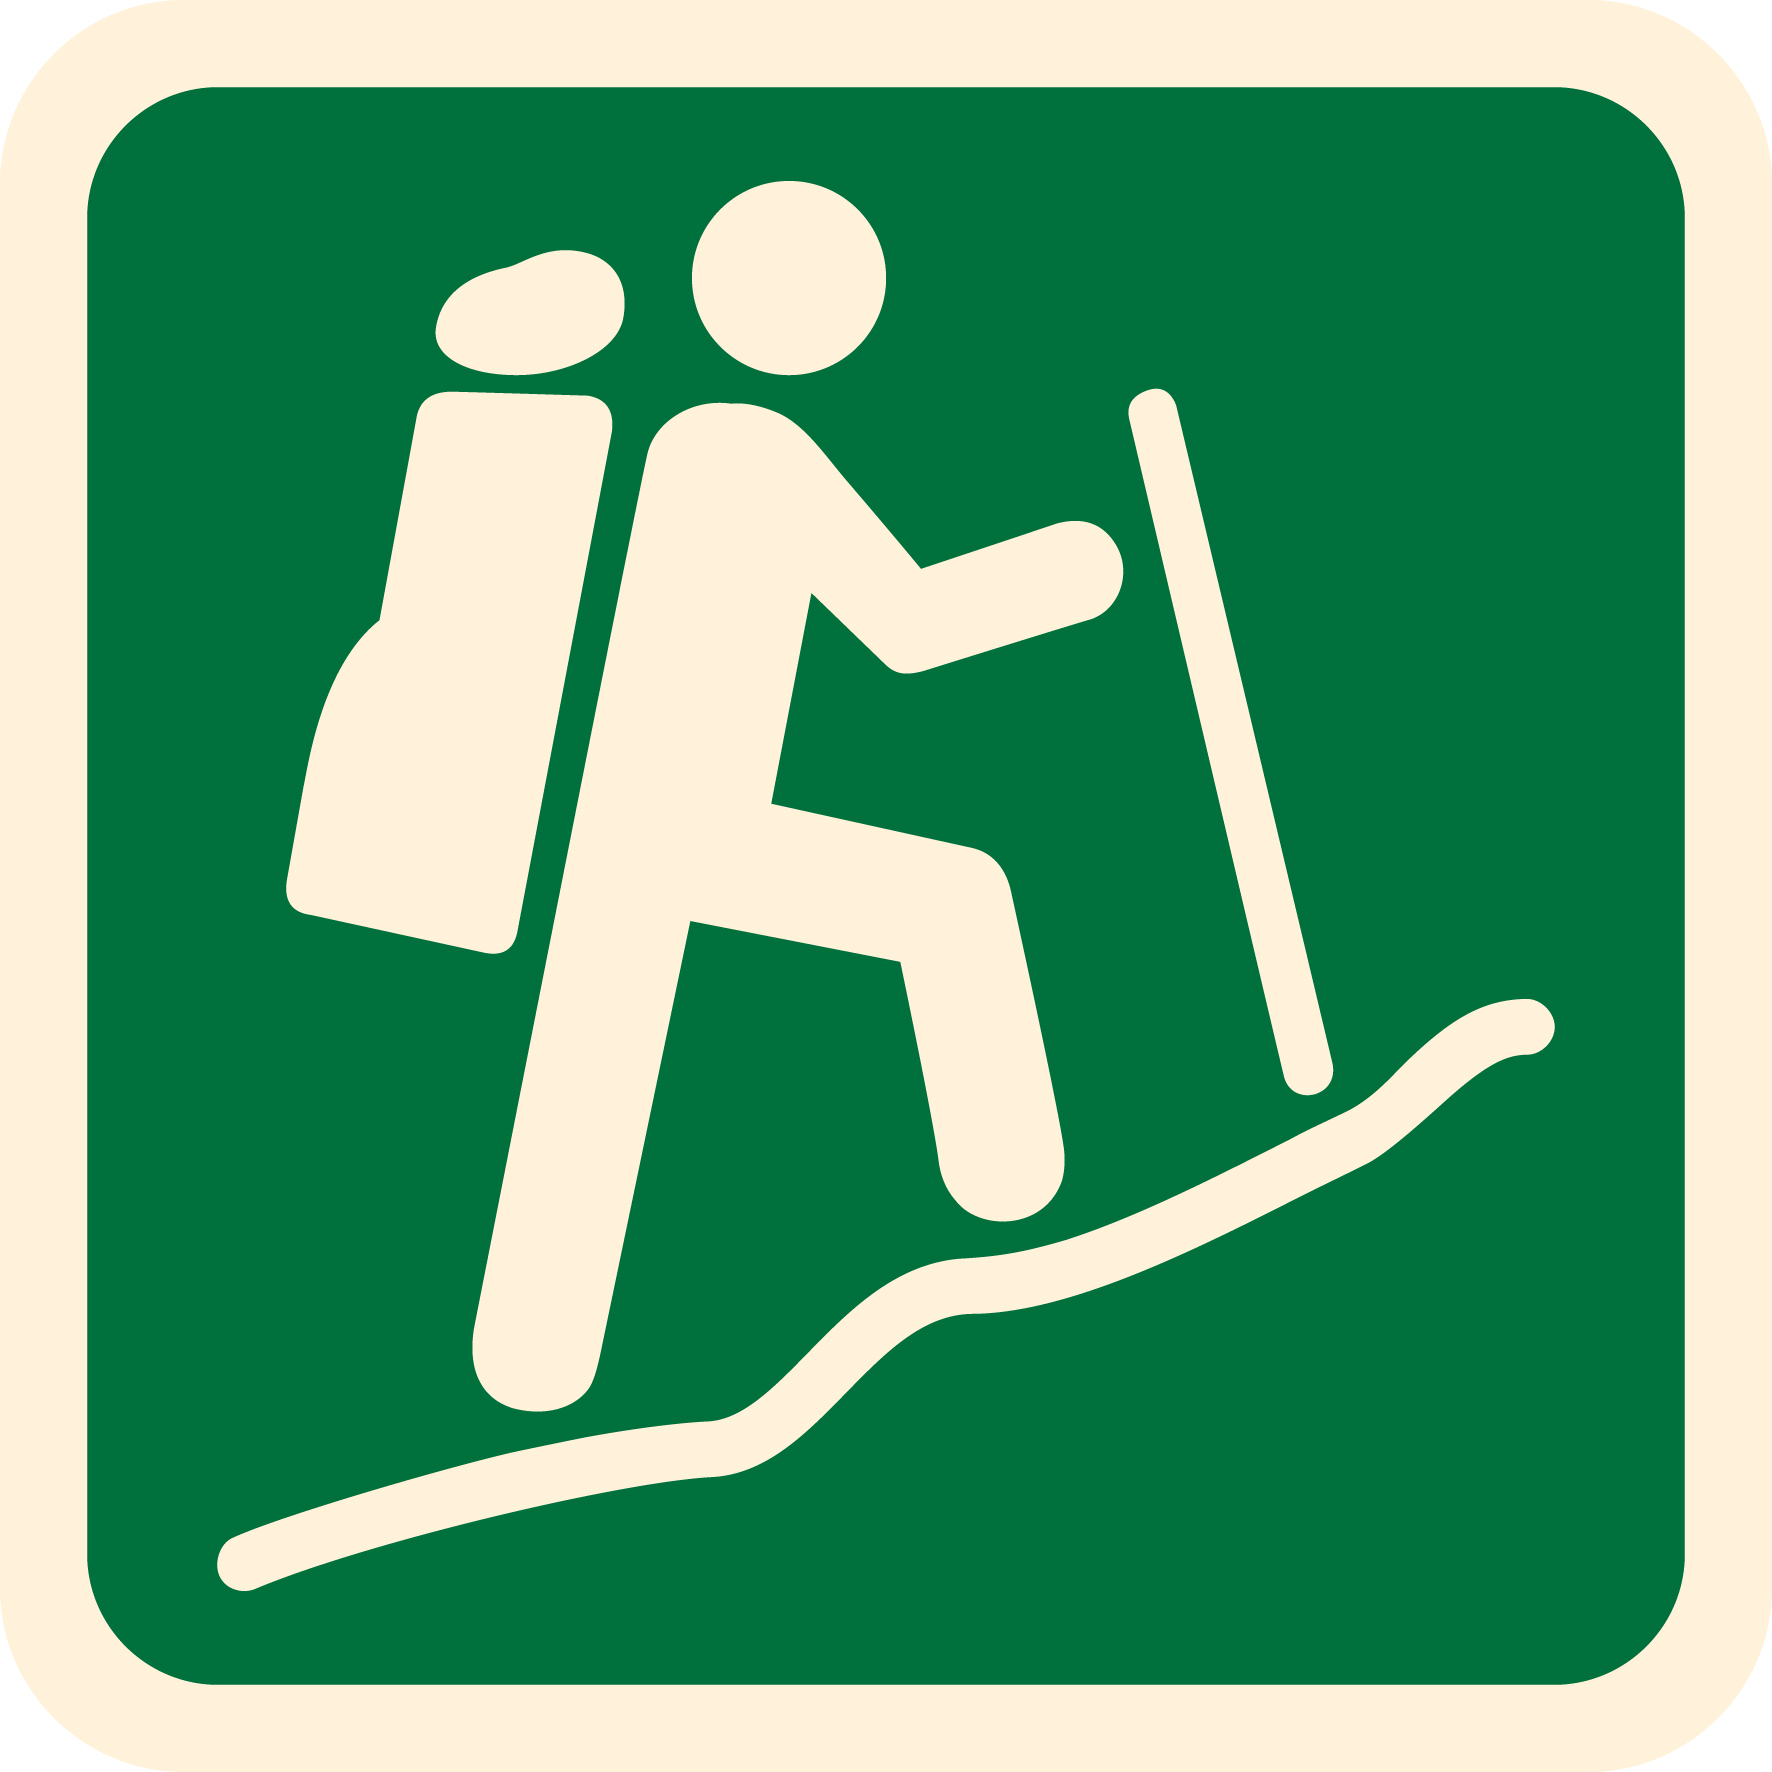 Walk Symbol - ClipArt Best